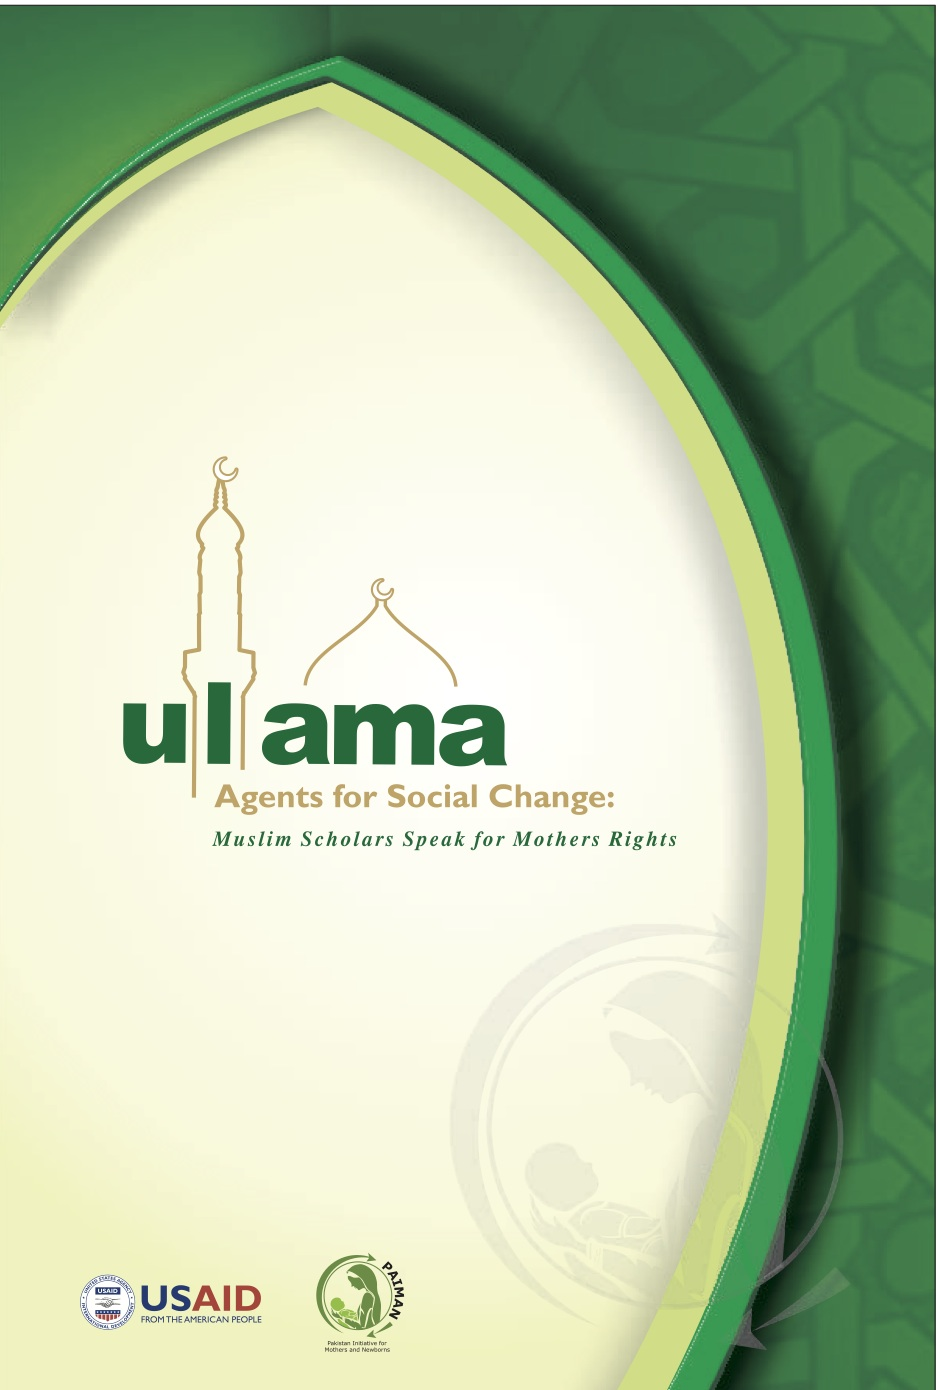 """Ulama - Agents for Social Change: Muslim Scholars Speak for Mothers Rights"""" - 2010"""